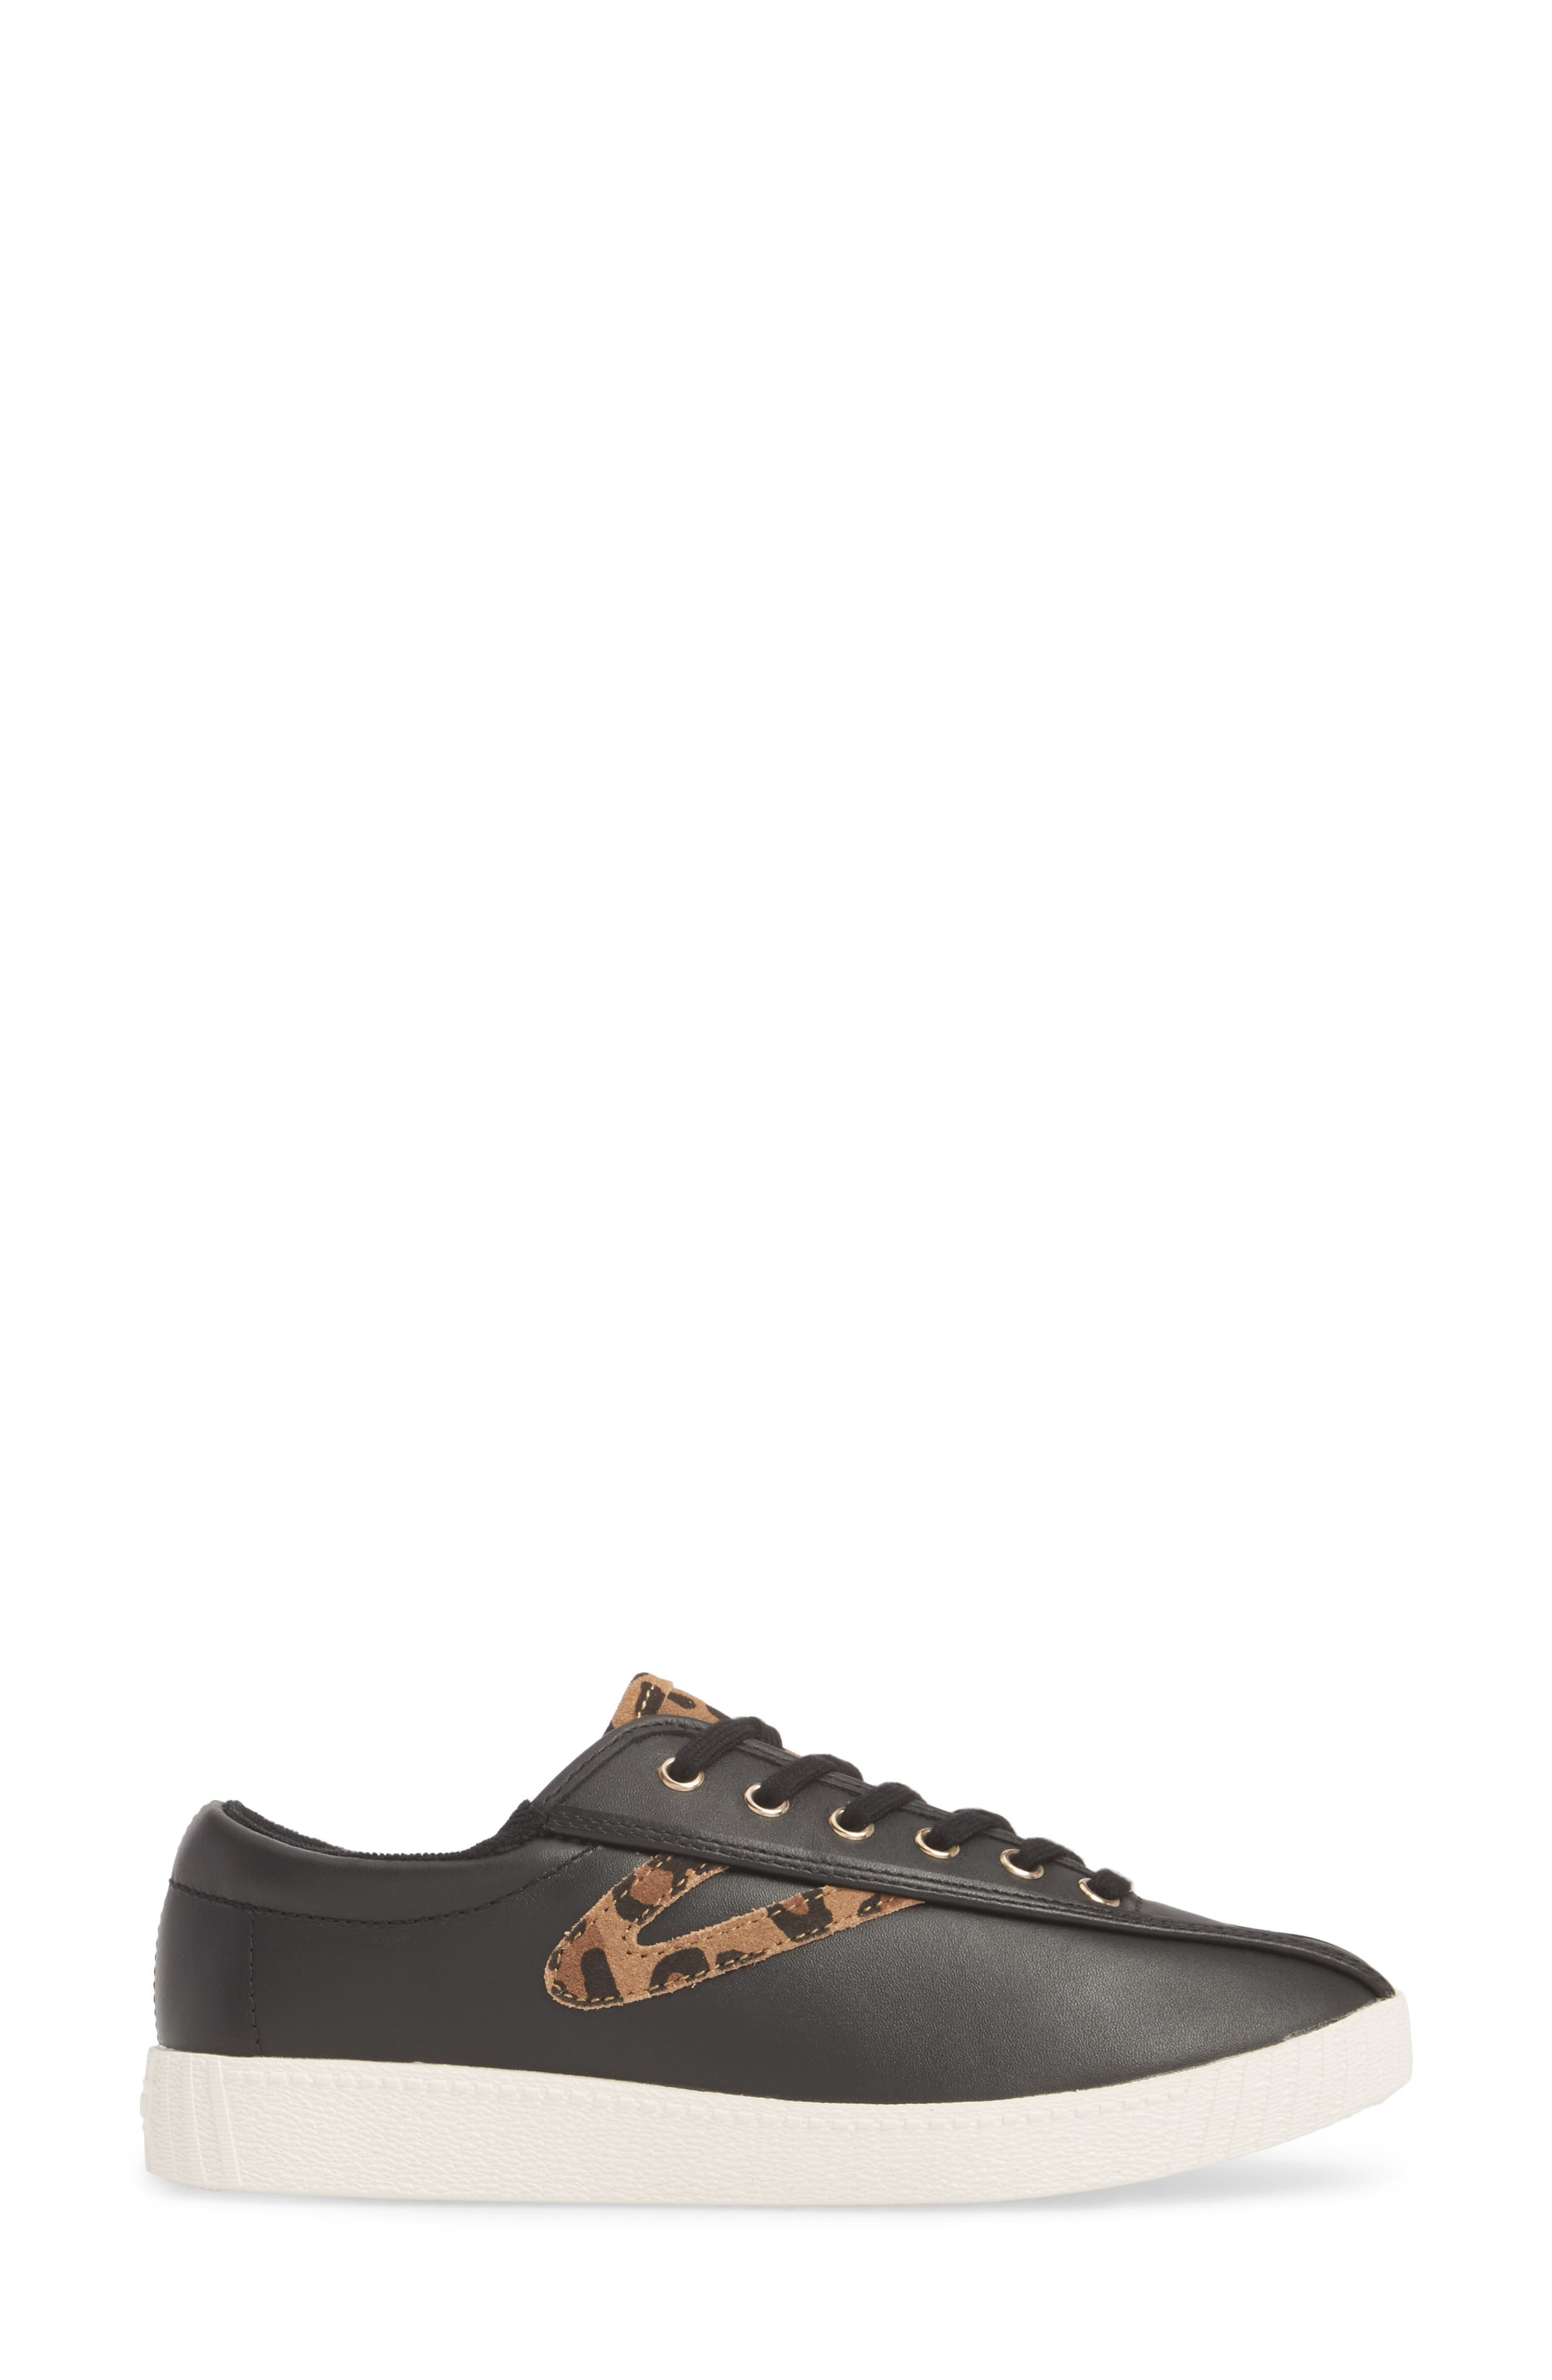 Patterned Sneaker,                             Alternate thumbnail 3, color,                             BLACK/ TAN/ BLACK LEATHER